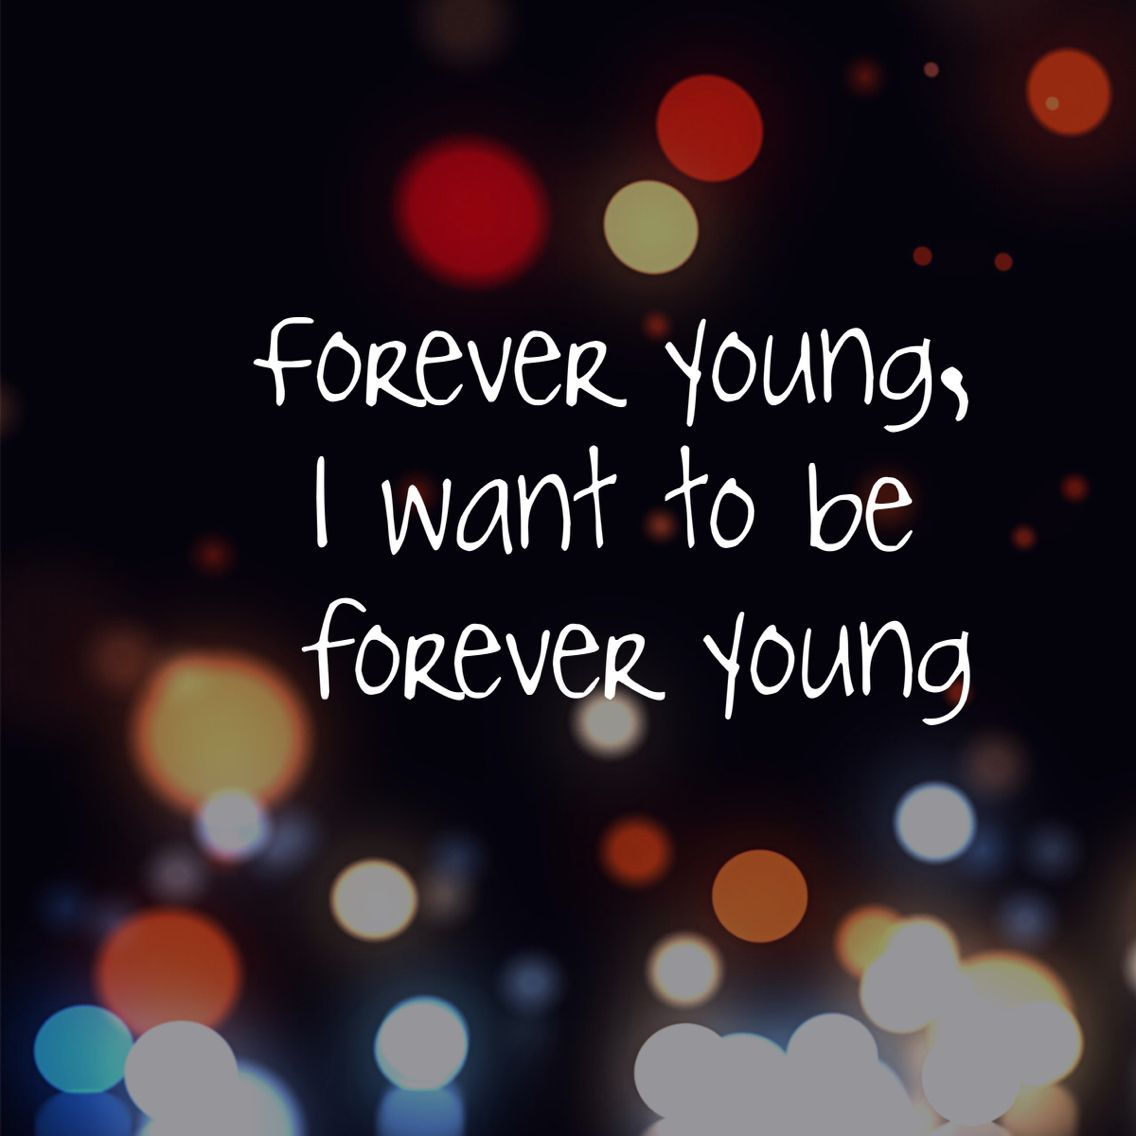 Jayz Ft Beyonce Forever Young Song Lyrics